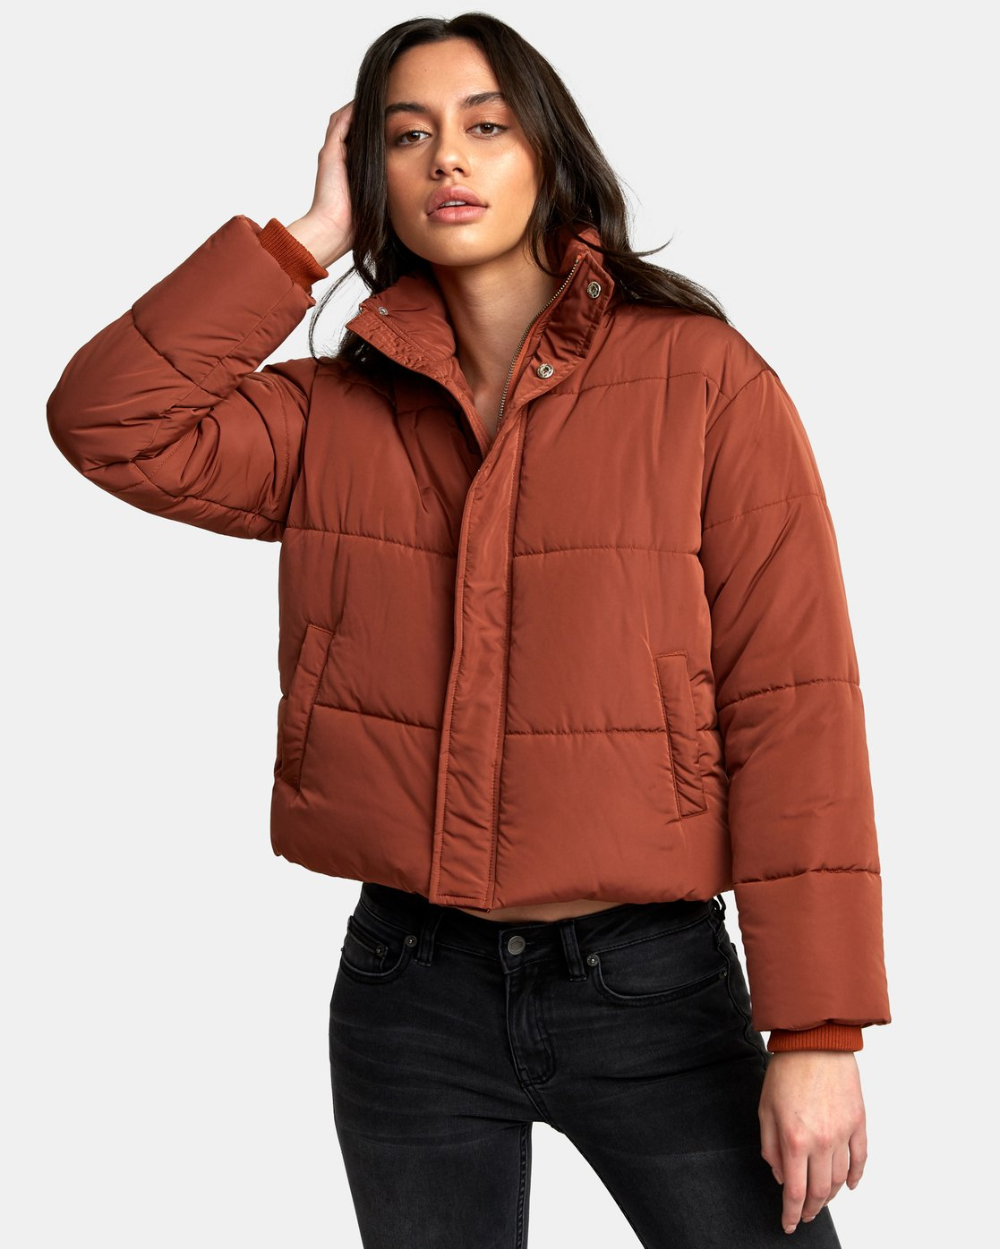 Eezeh Puffer Cropped Jacket W703qree Puffer Jacket Outfit Crop Jacket Jackets [ 1249 x 1000 Pixel ]